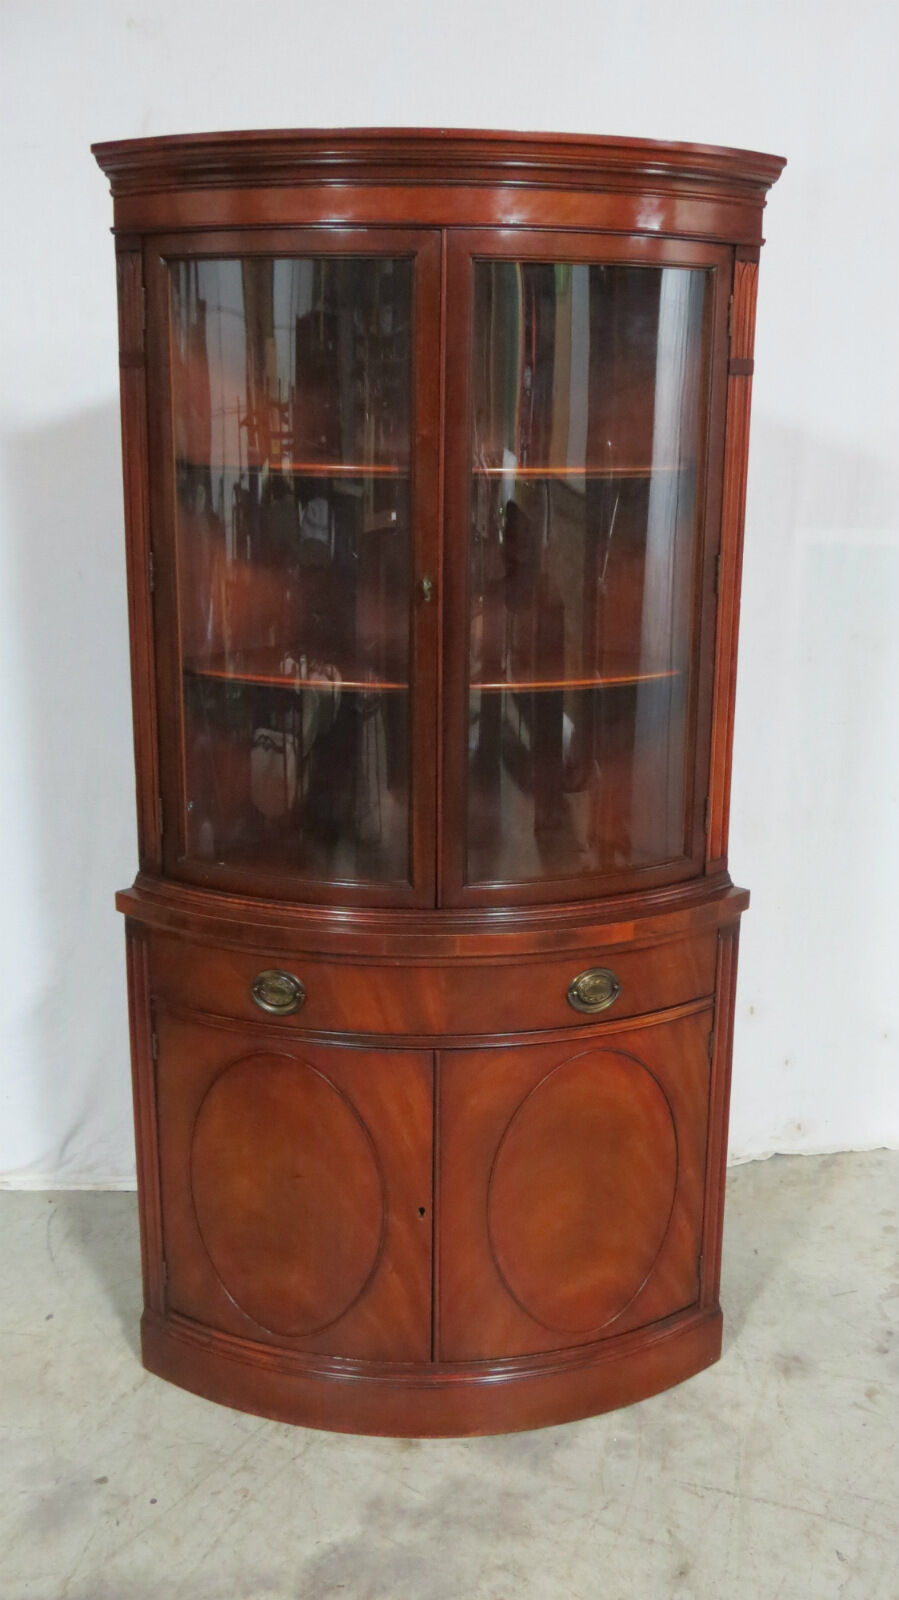 Delicieux Drexel Bowfront Curved Glass China Cabinet Mahogany 1 Of 9Only 1 Available  ...